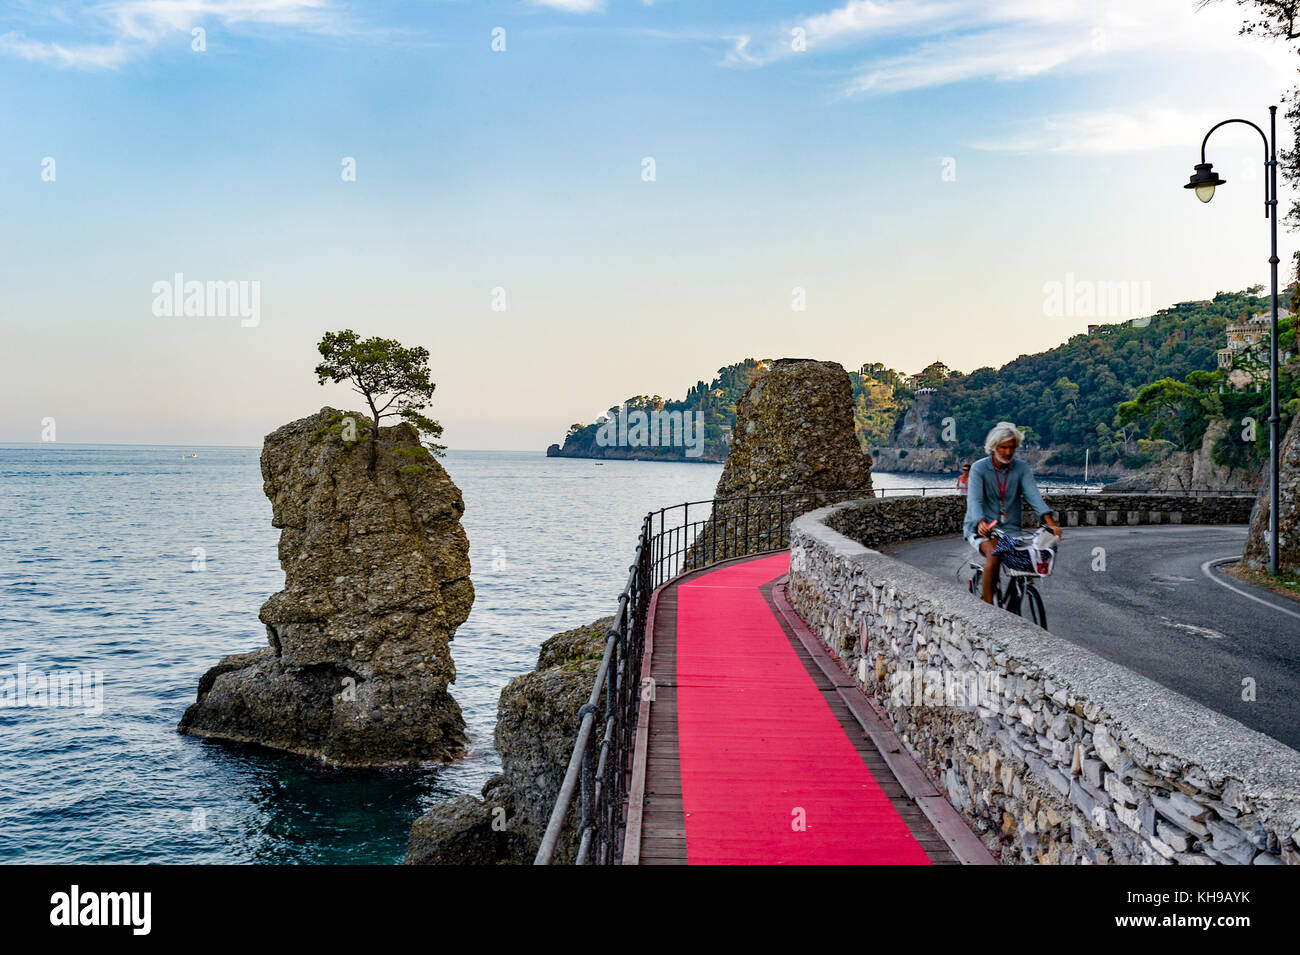 Roter Teppich In Ligurien Red Carpet Stockfotos And Red Carpet Bilder Alamy